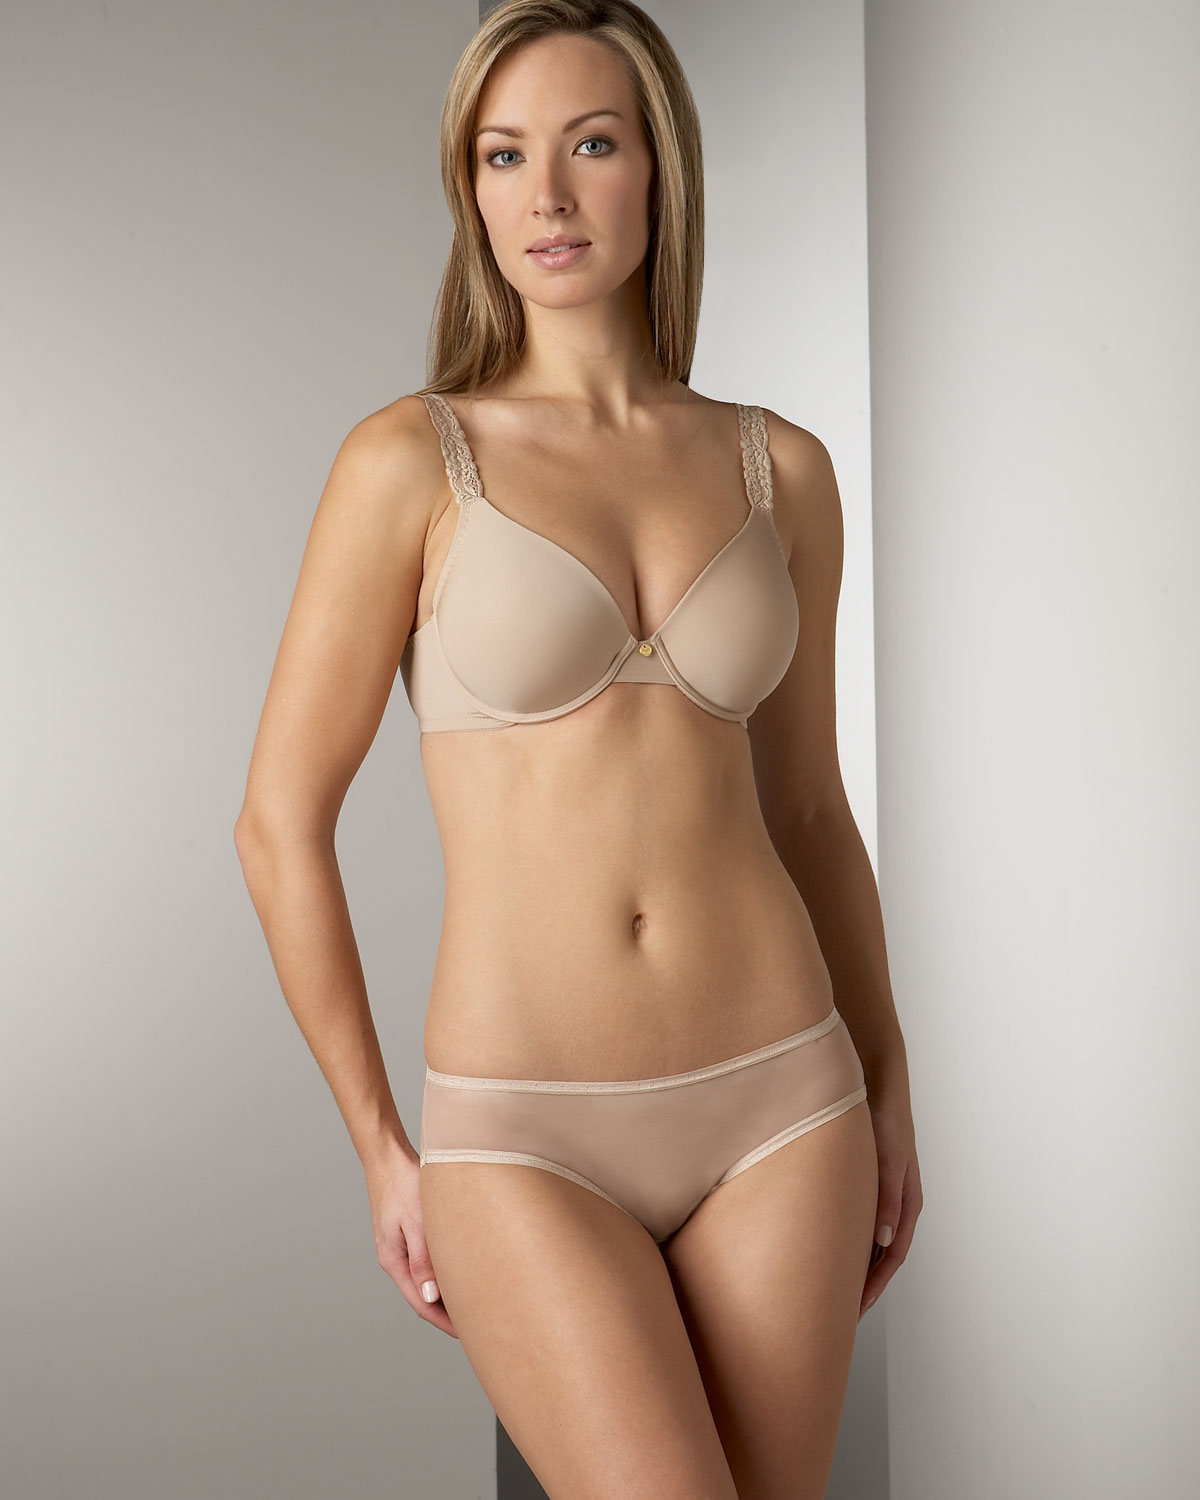 lyst - natori lacetrim bra in natural